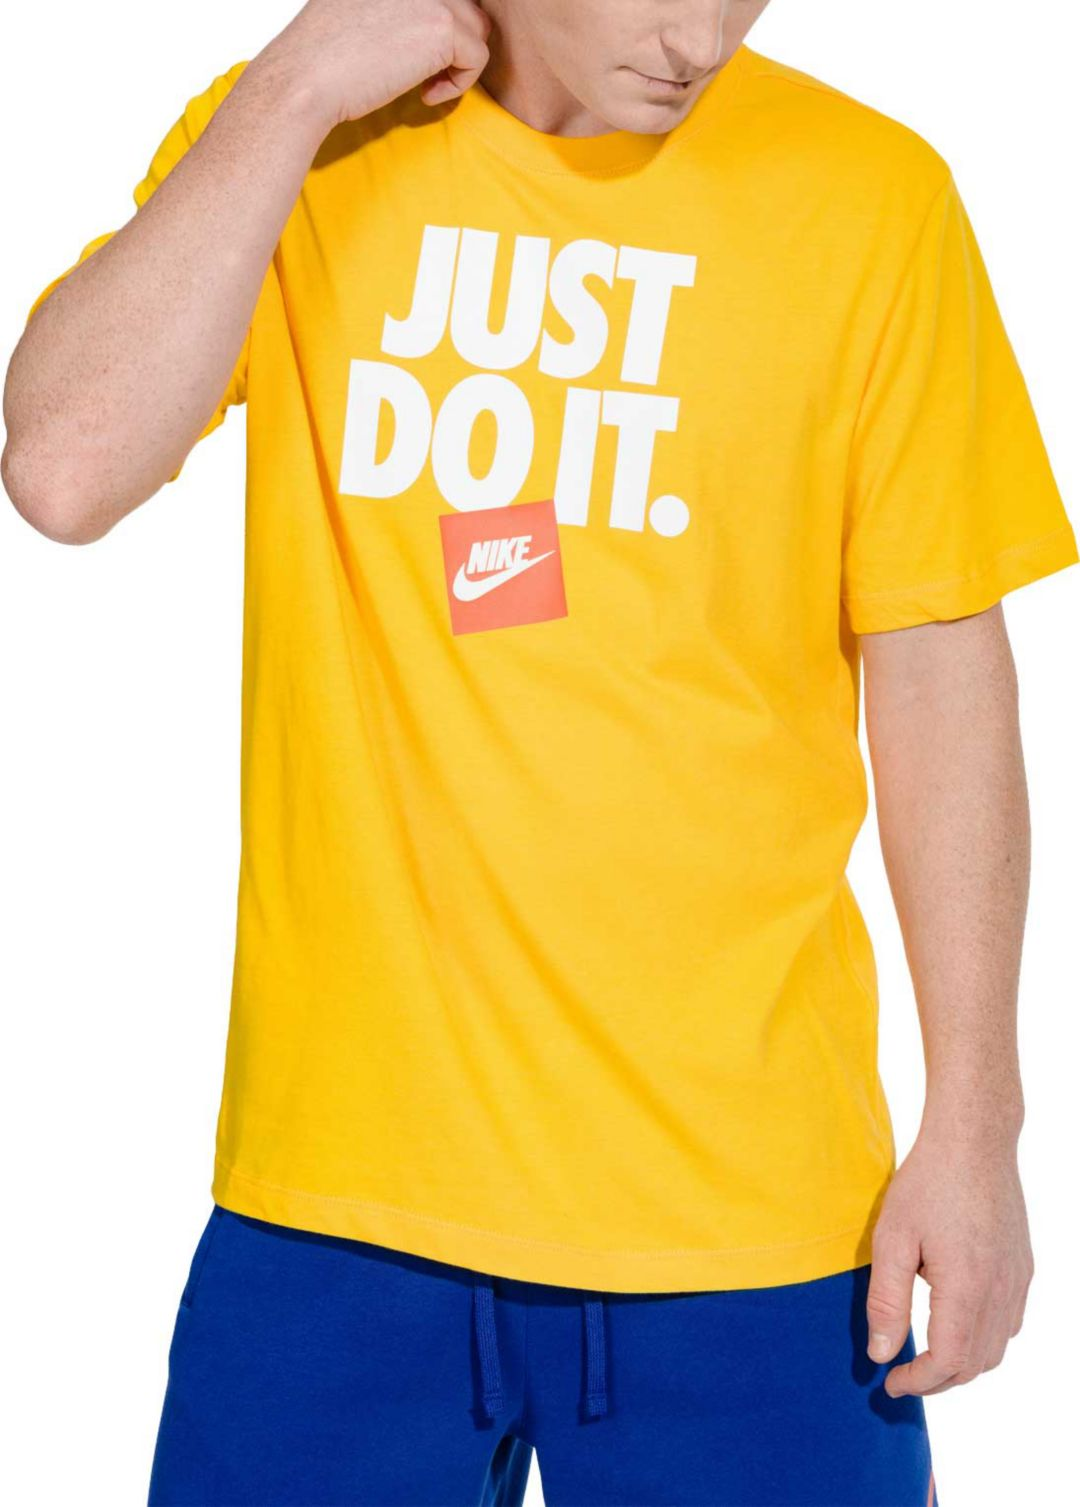 Men's Nike just do it T shirt size small